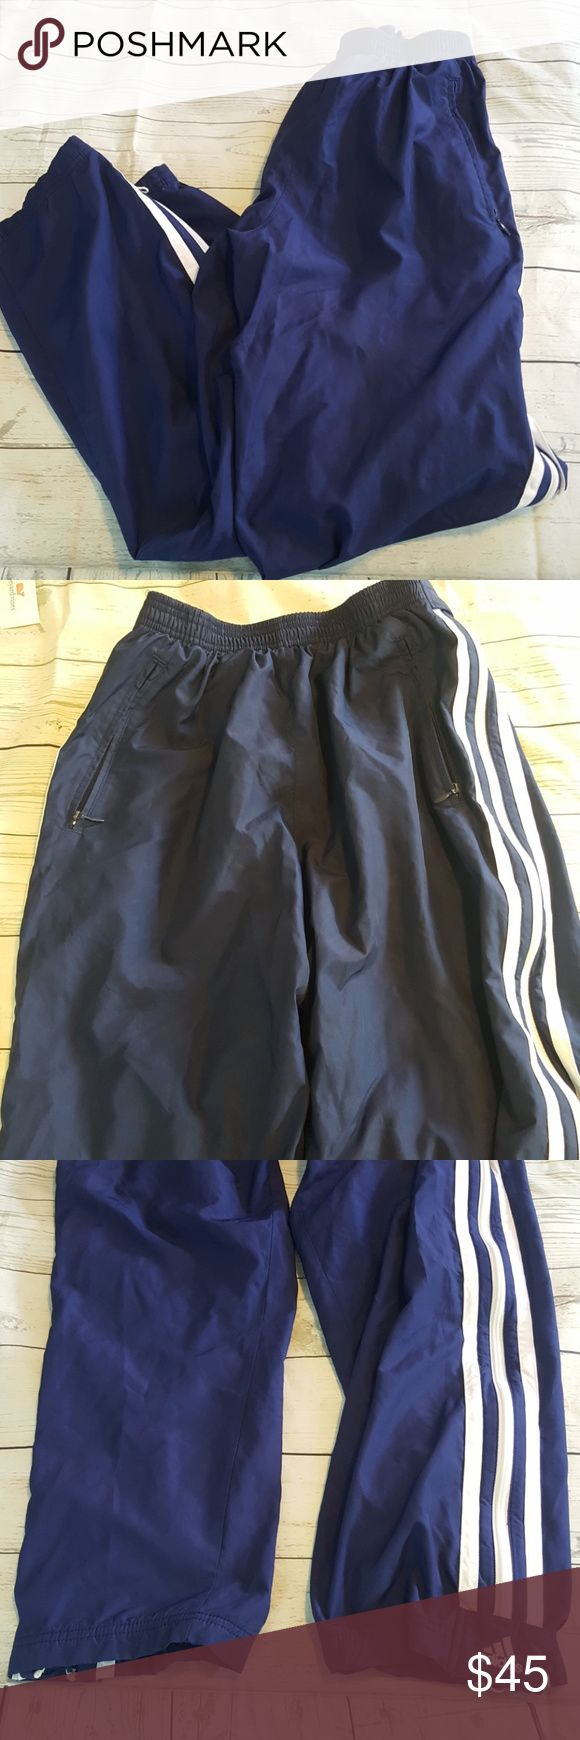 Adidas Warm Up Pants Windbreaker Striped Zip Up M Adidas Warm Up Pants Windbreaker Striped Zip Up M  Elastic waist  Lined Pockets Zippers on both legs to take pants off  All reasonable offers accepted no trades   1027 e25 1 Pants